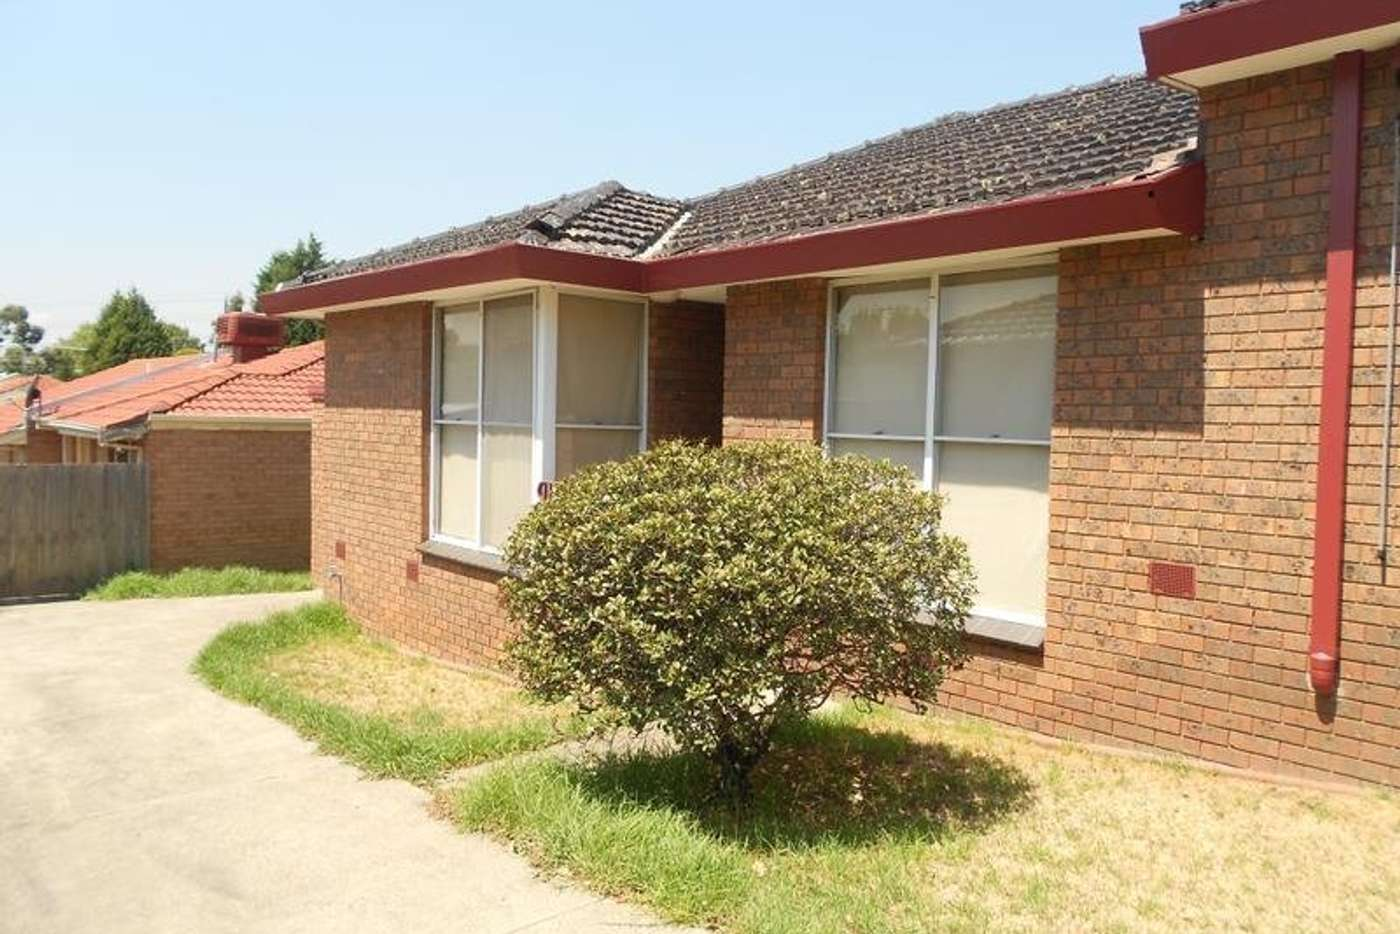 Main view of Homely unit listing, 5/26 Snell Grove, Oak Park VIC 3046